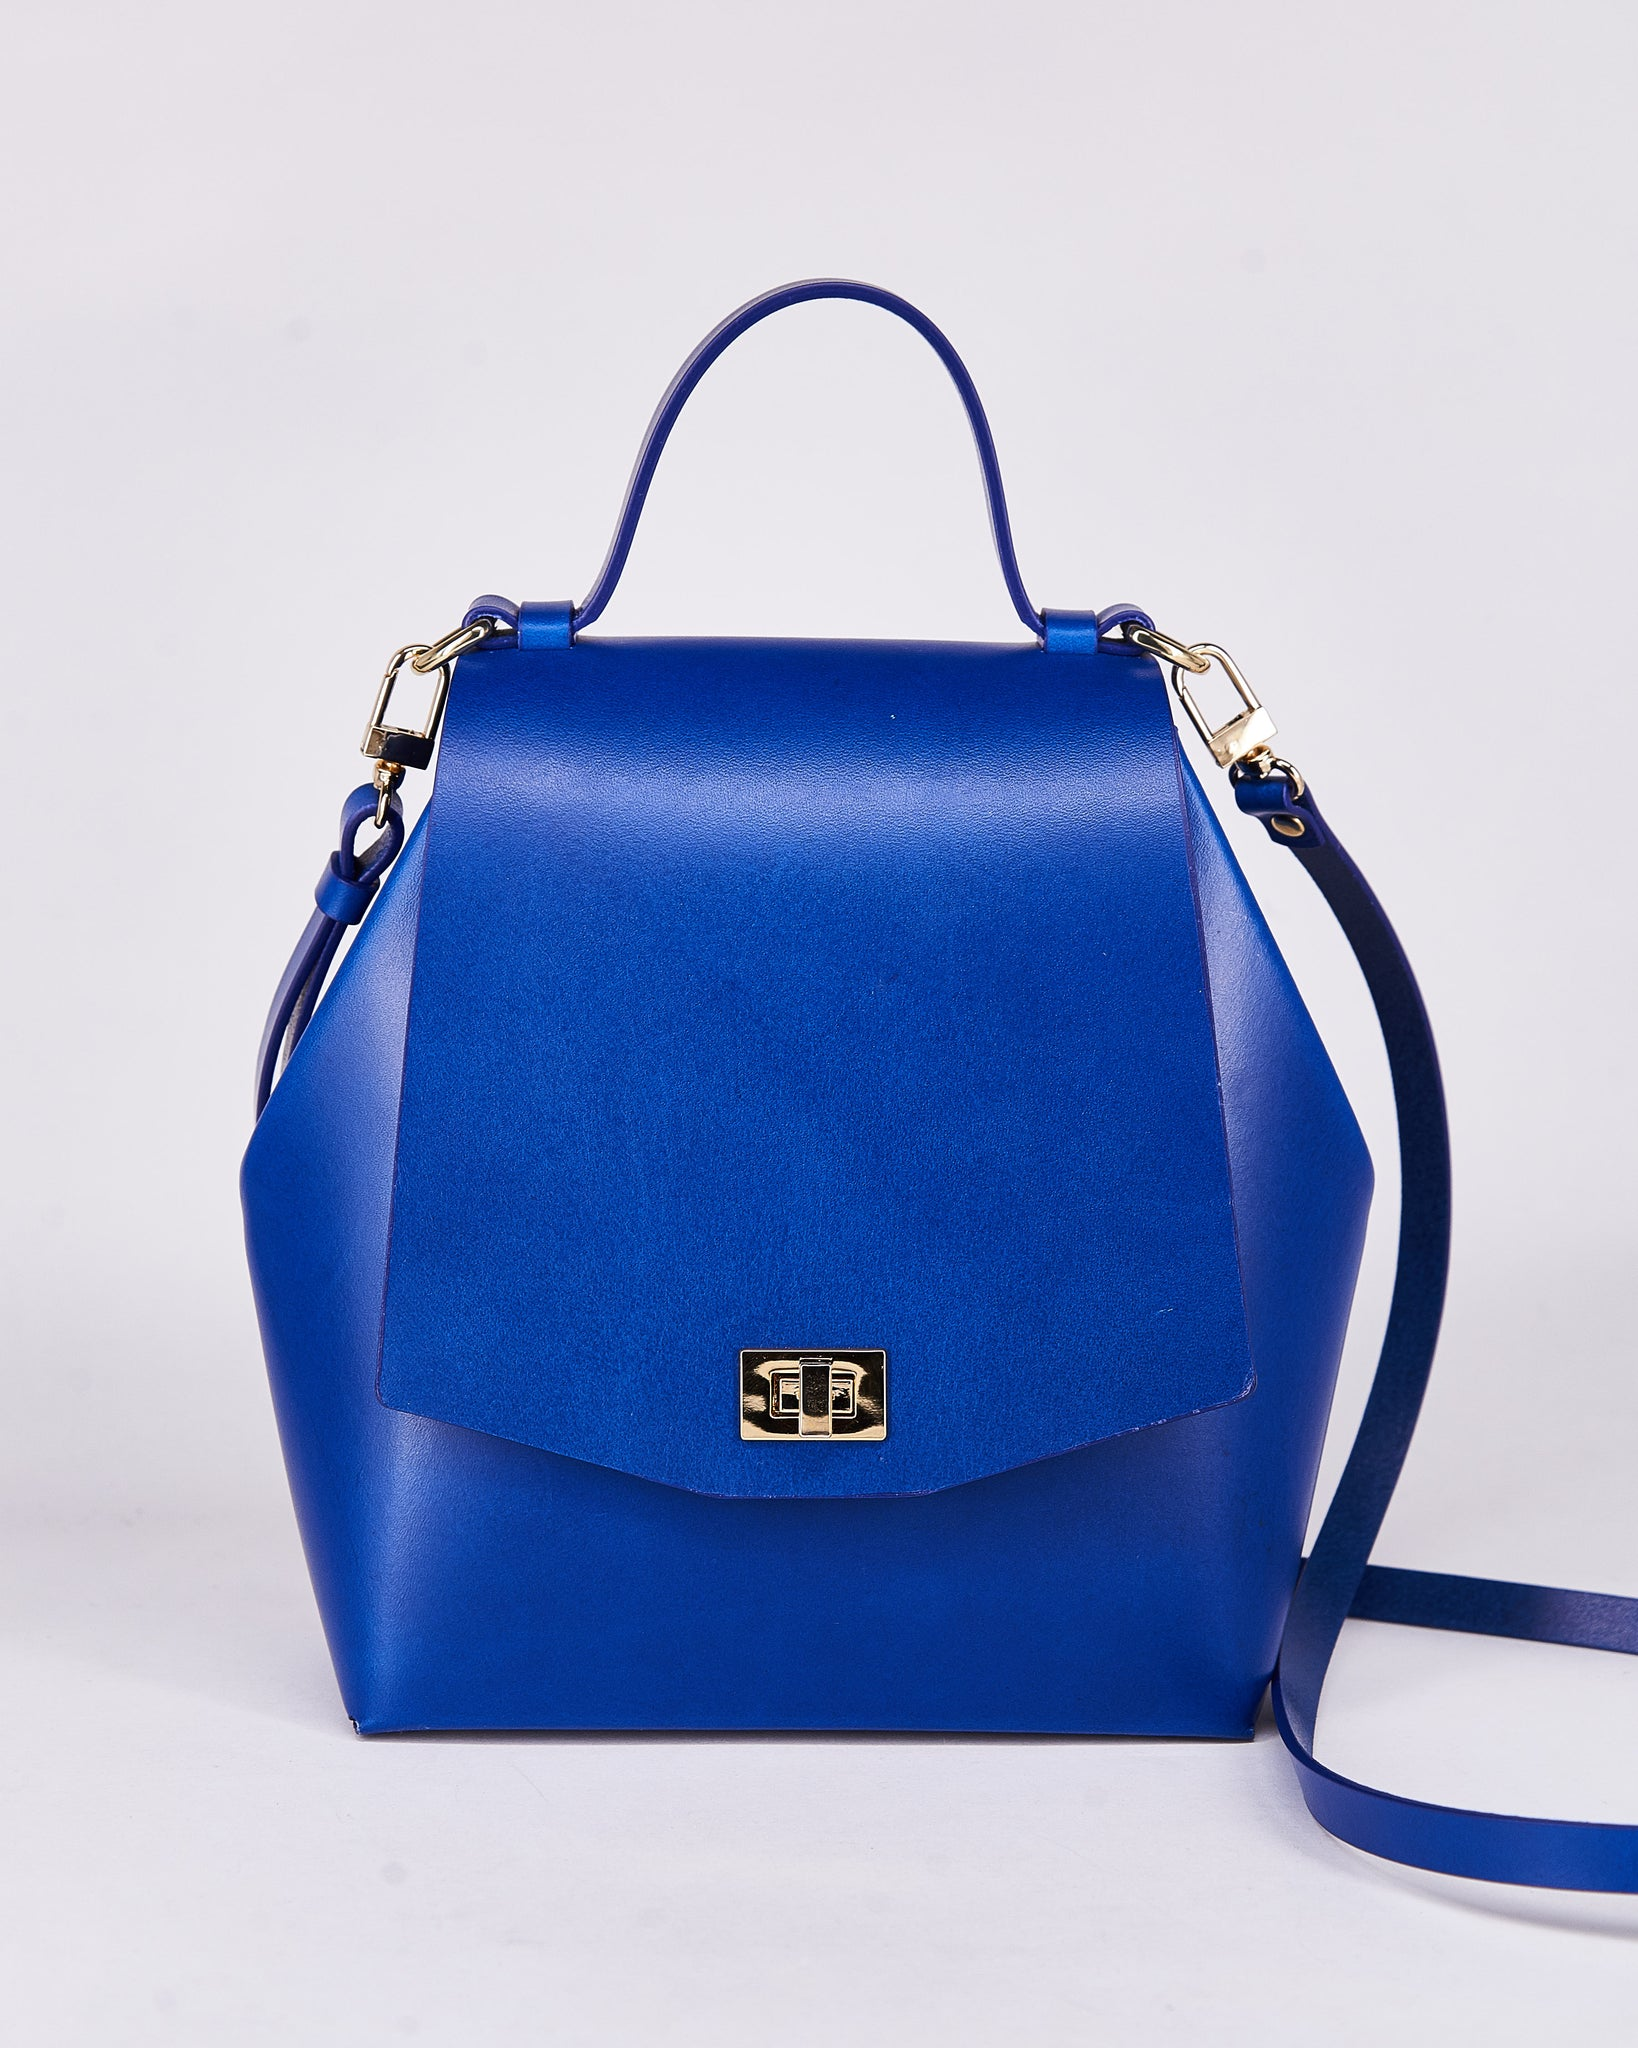 Hex Bag-Blue-Leather-Designed by Nuovum-Localdesigners-Barcelona-Front Strap